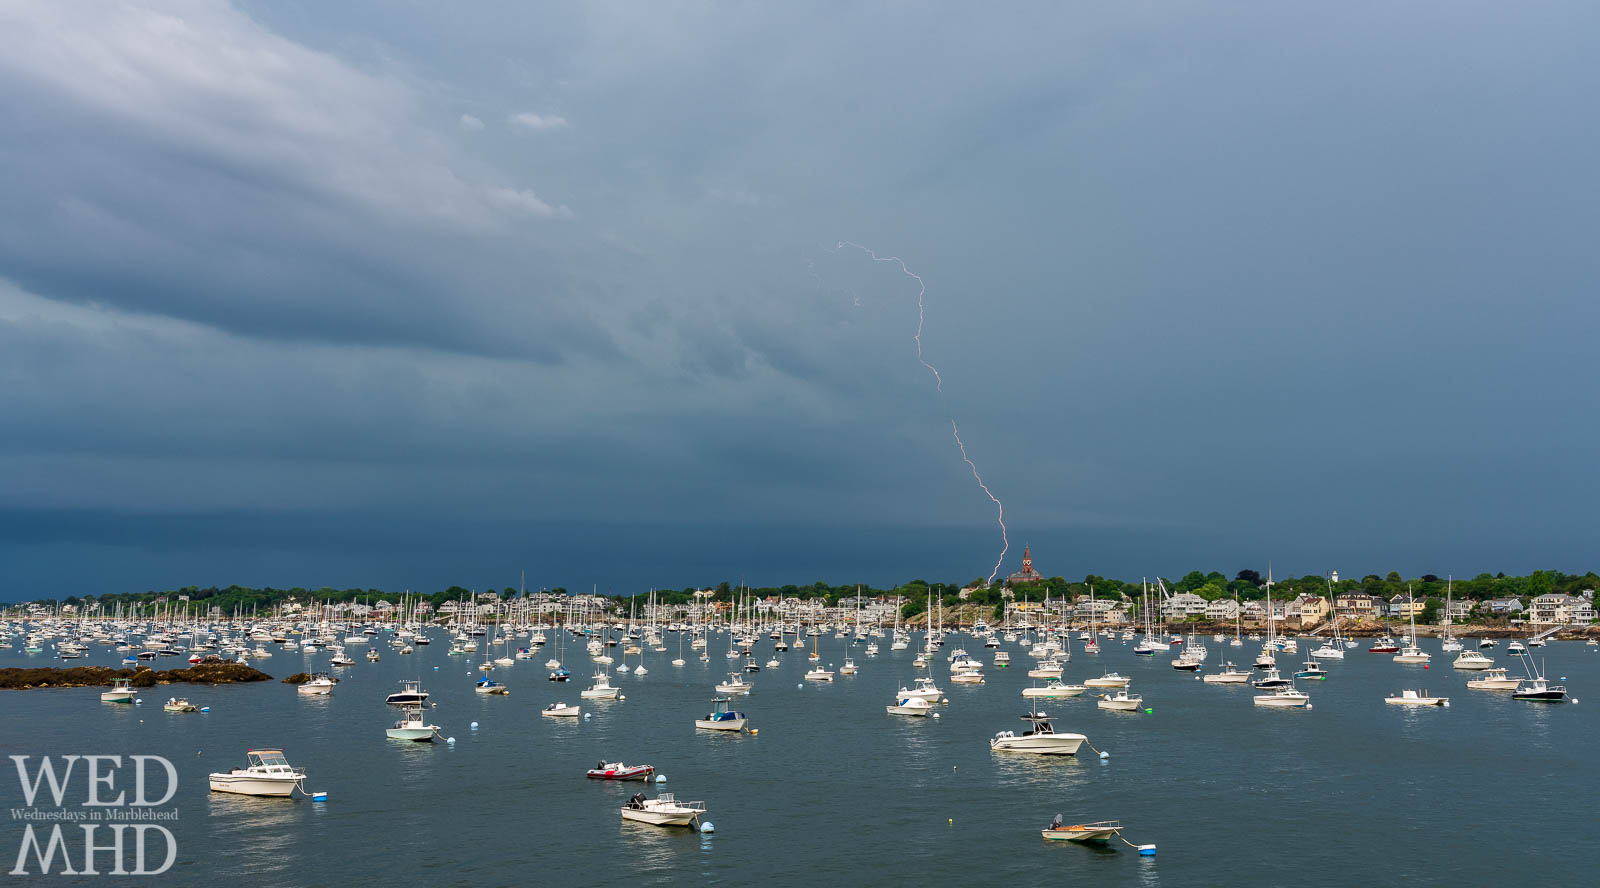 The first summer storm in Marblehead brings a bolt of lightning near Abbot Hall and over a harbor filled with boats